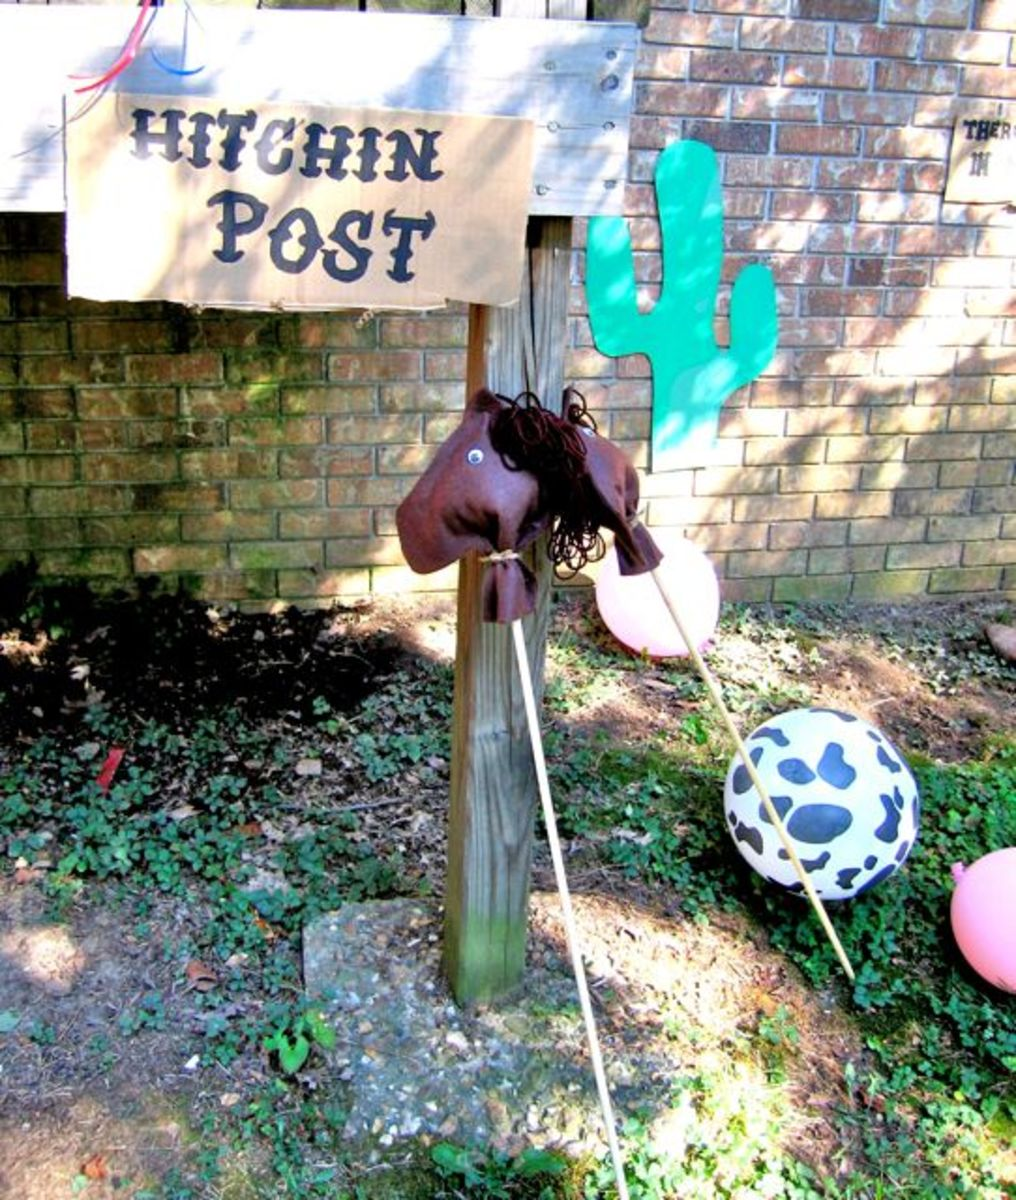 A Hitchin Post. Read more at: designdazzle.blogspot.com